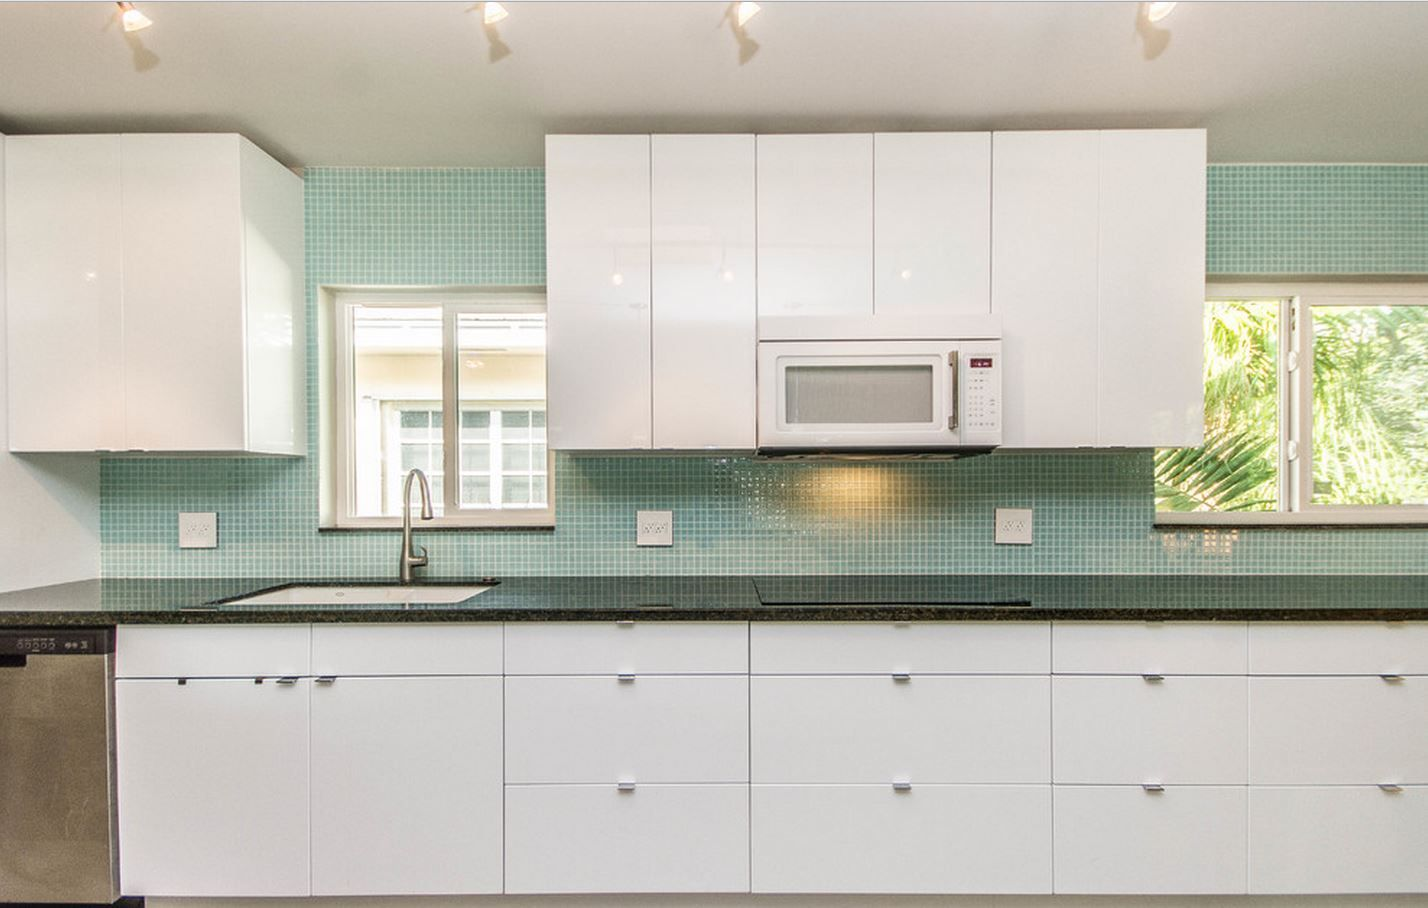 This kitchen was designed by Habify and features Berenson Bravo ...